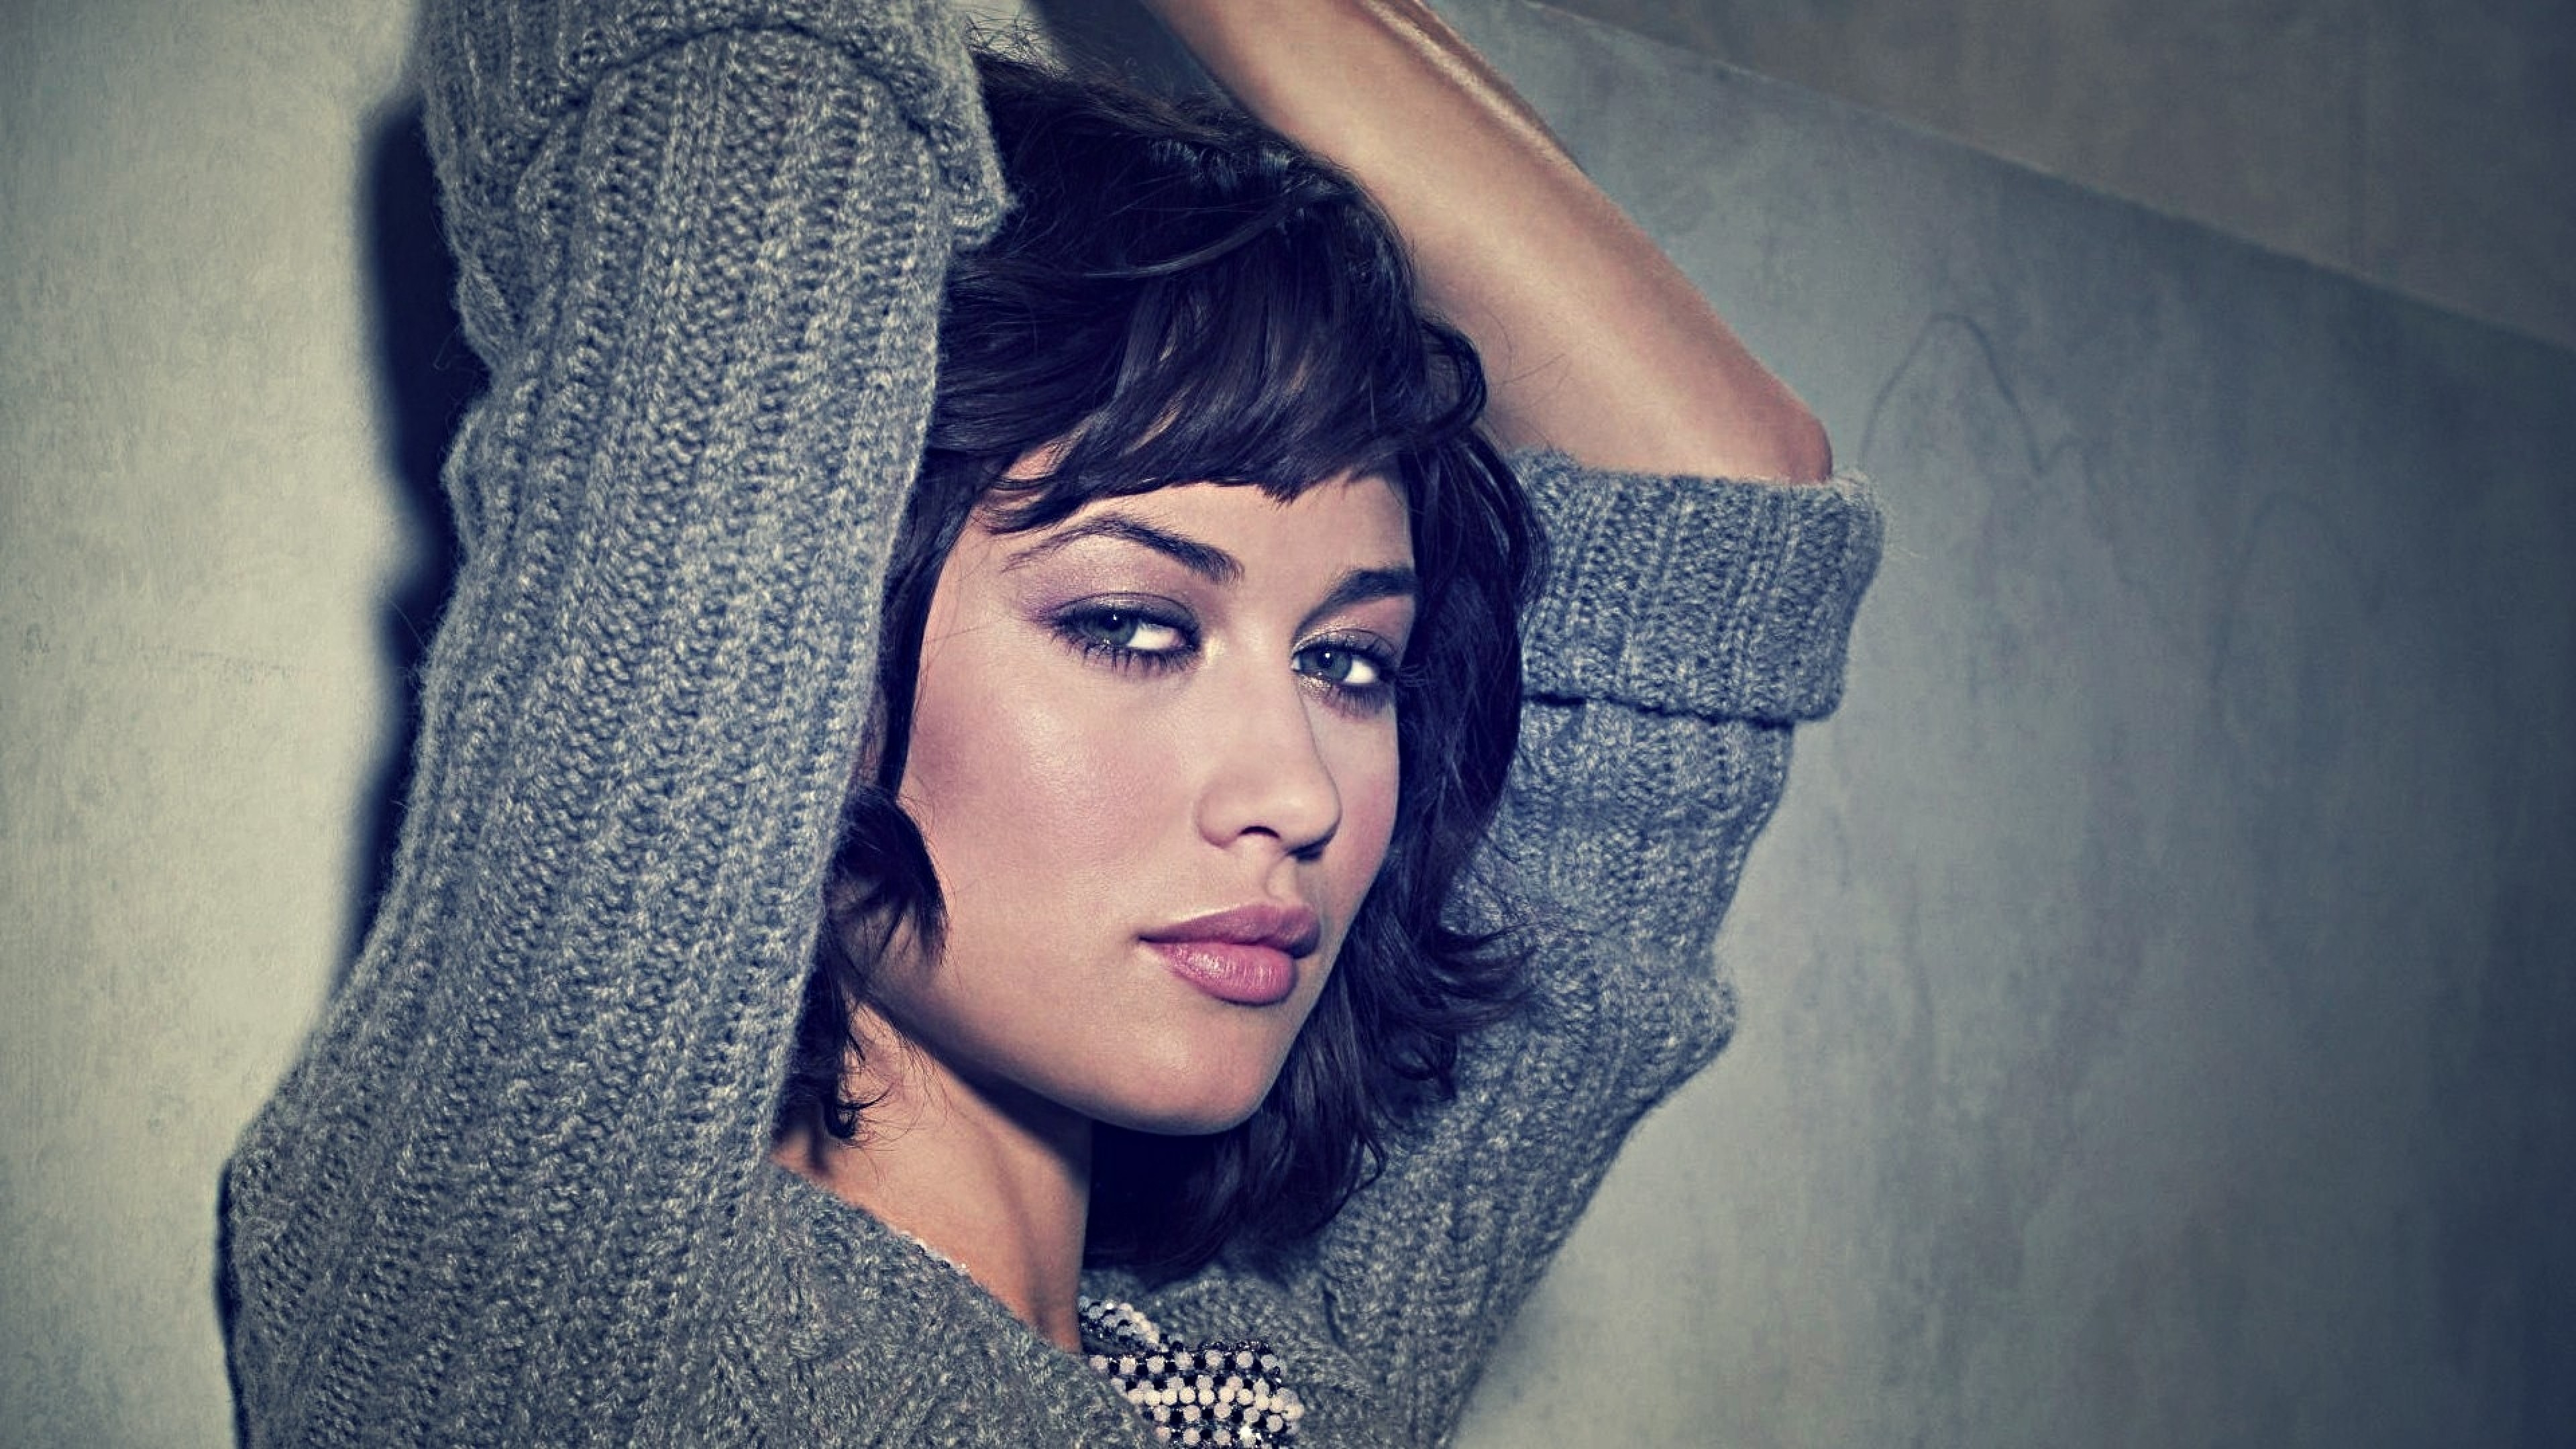 3840x2160 Preview wallpaper olga kurylenko, brunette, face, eyes, lips, hair